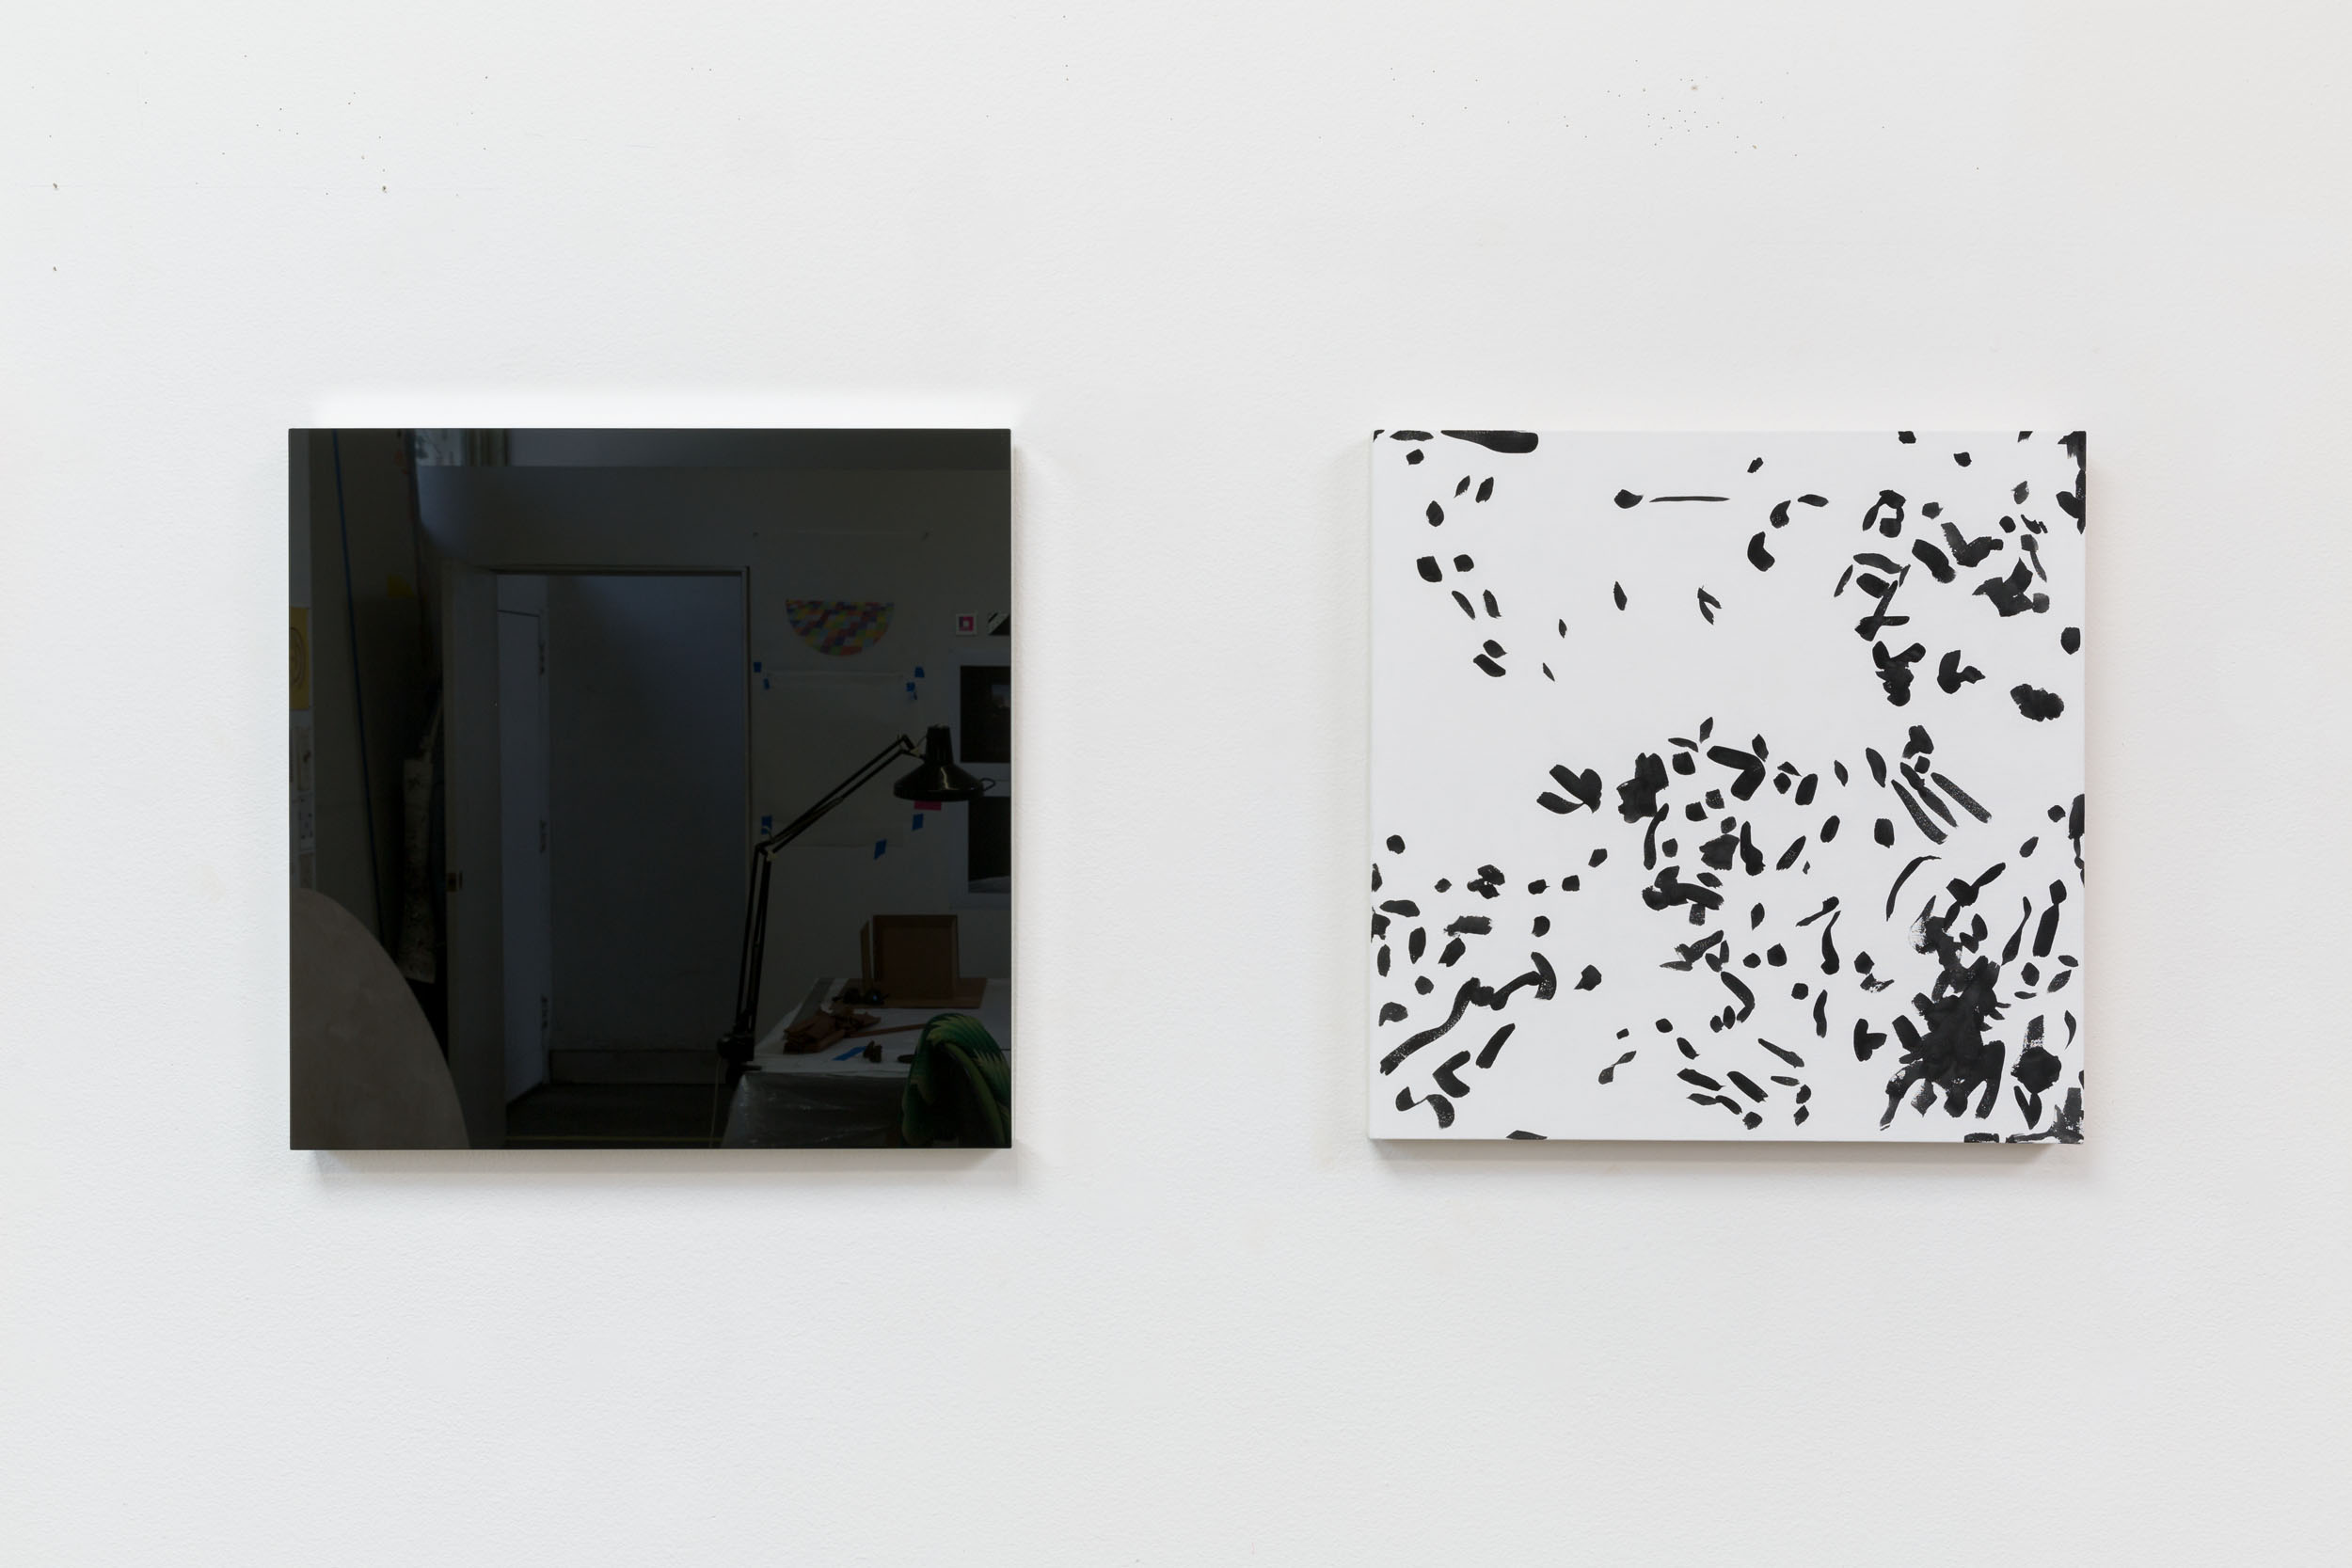 la Mère and le Père, 2016, black and silver mirror mounted on wood panel, and Flashe vinyl paint on canvas,  24 x 24 inches each